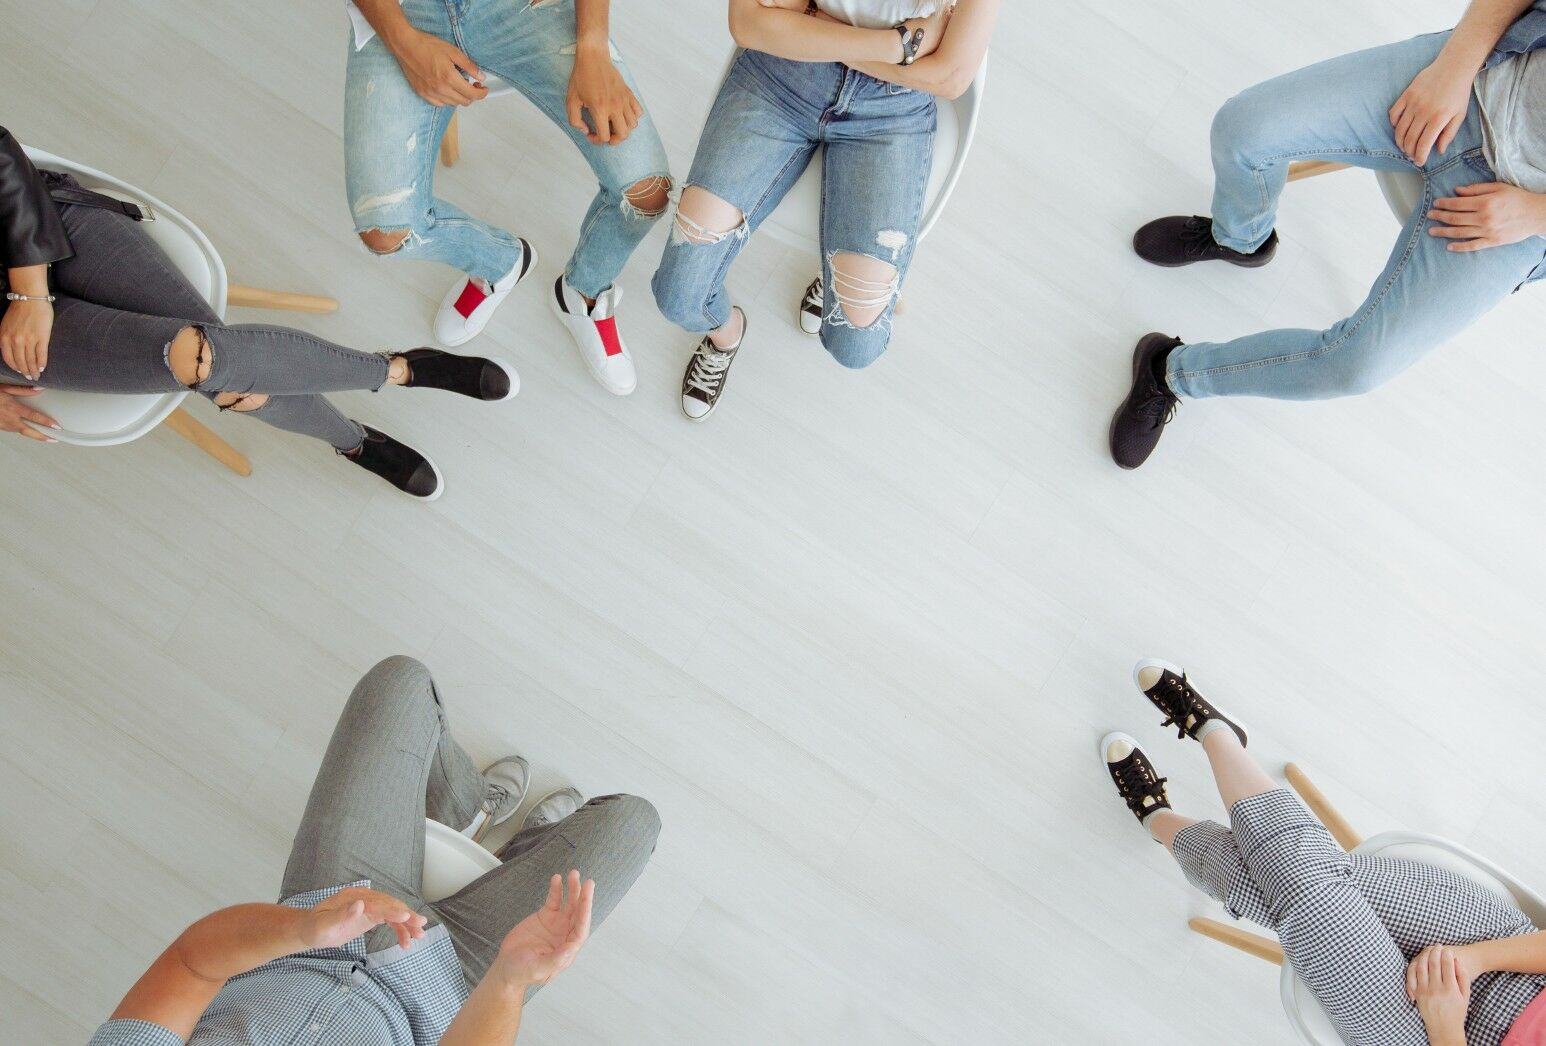 An overhead view of a group of individuals sitting in a talk circle. They are all wearing casual clothing.